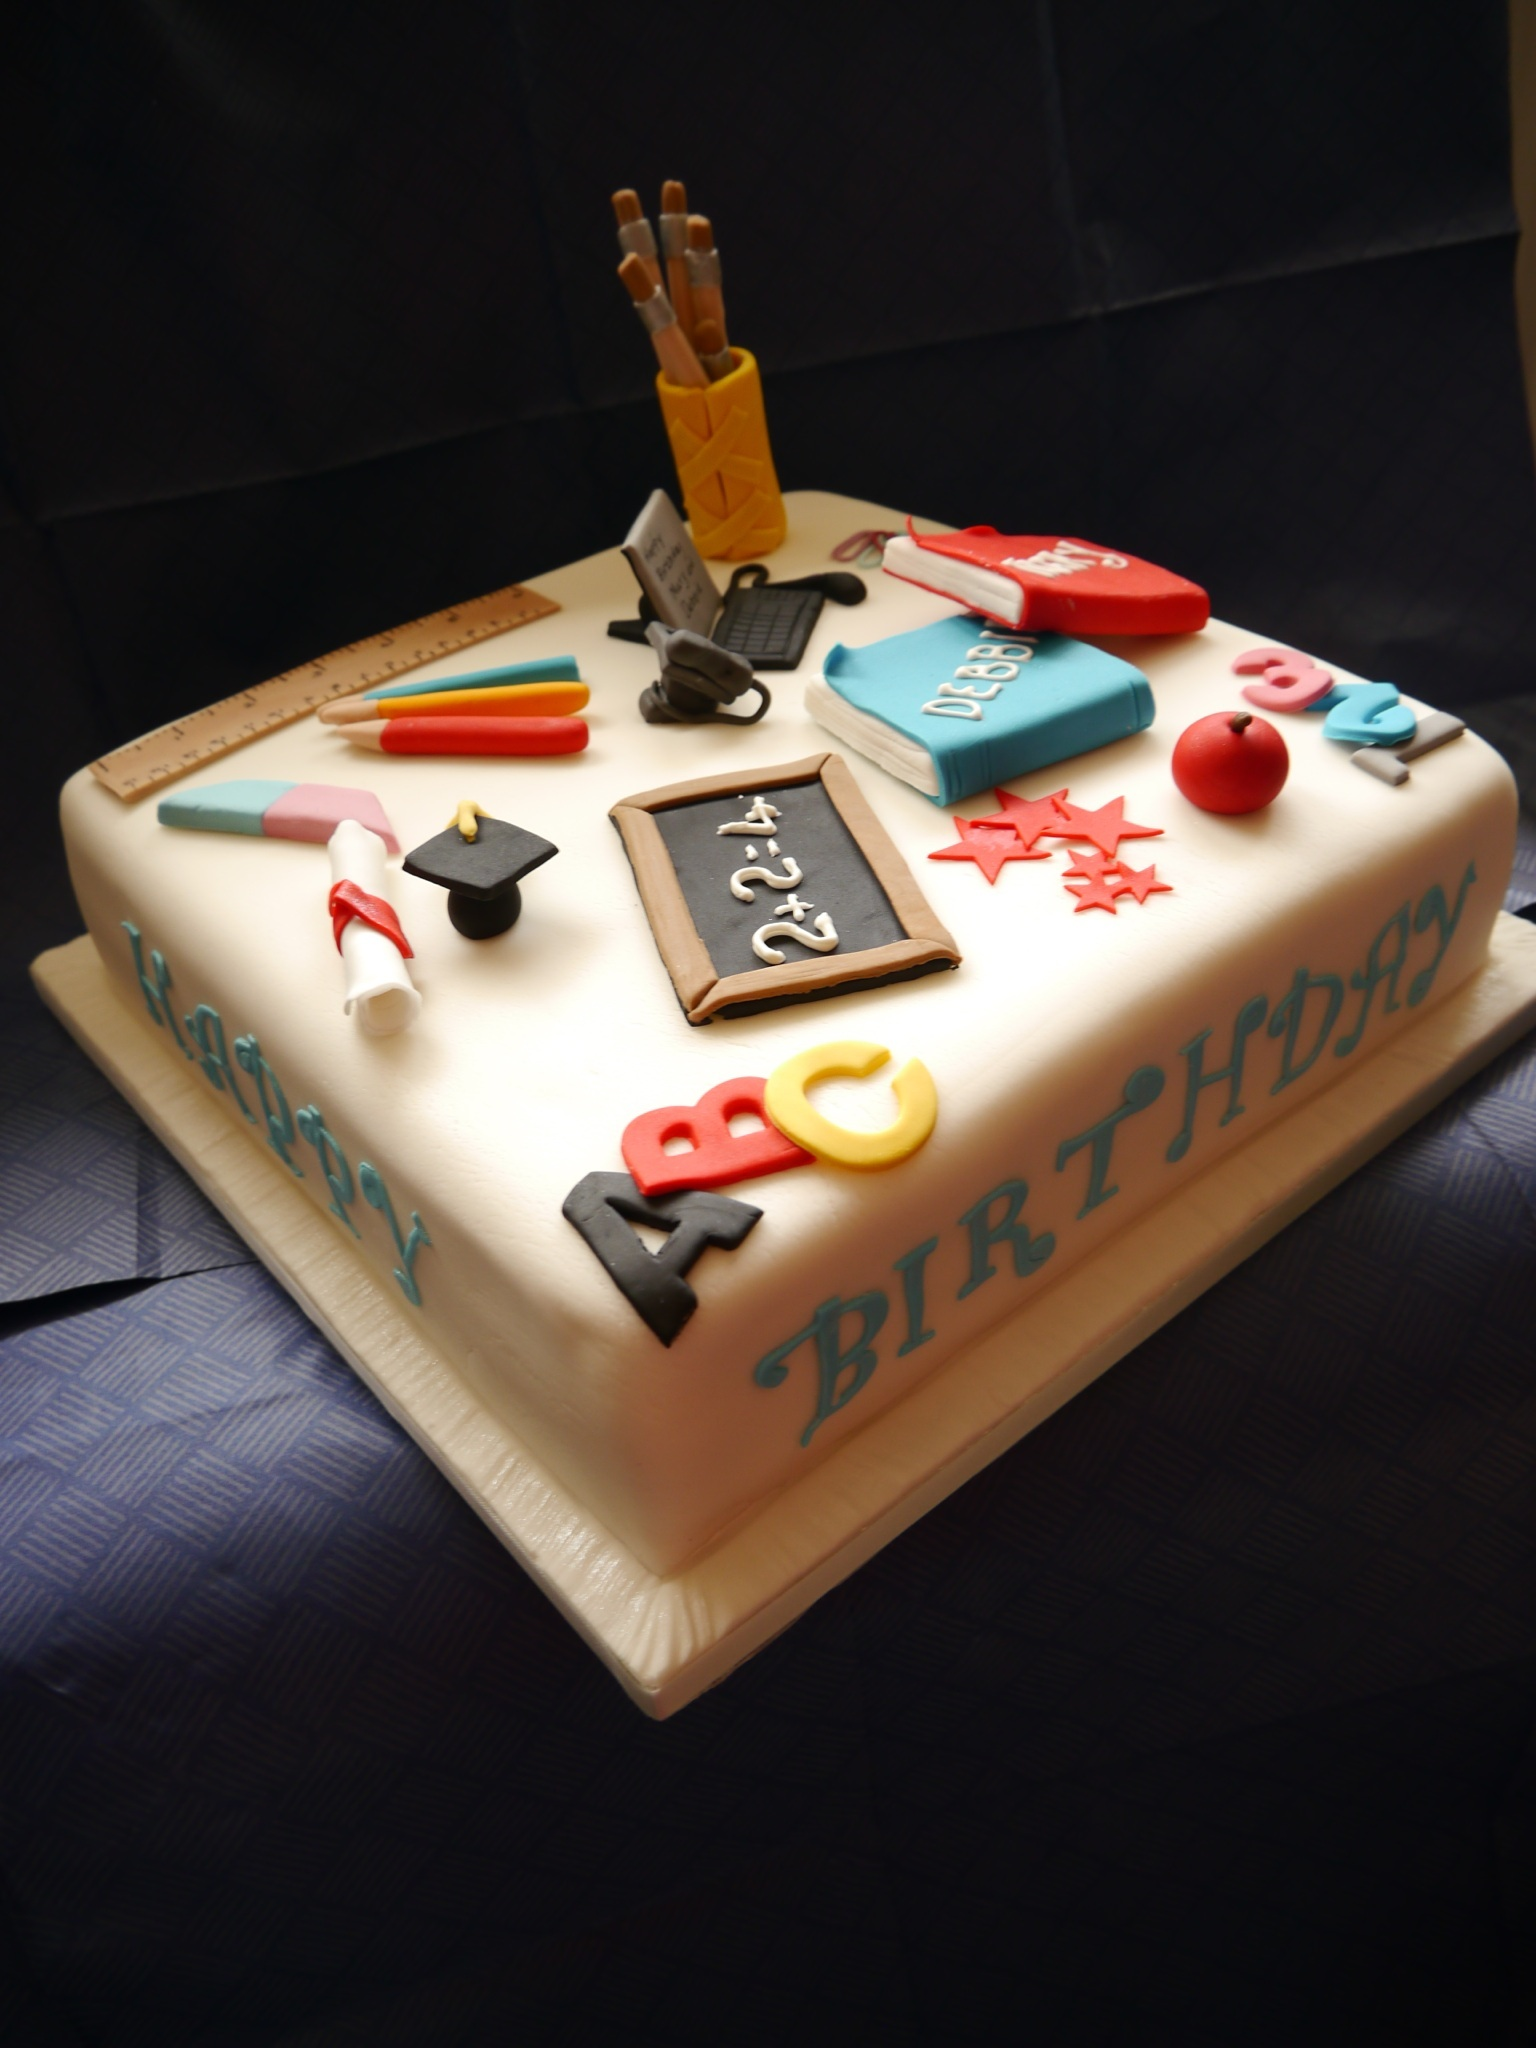 Best Cake Design Schools : School leaving cake The Great British Bake Off